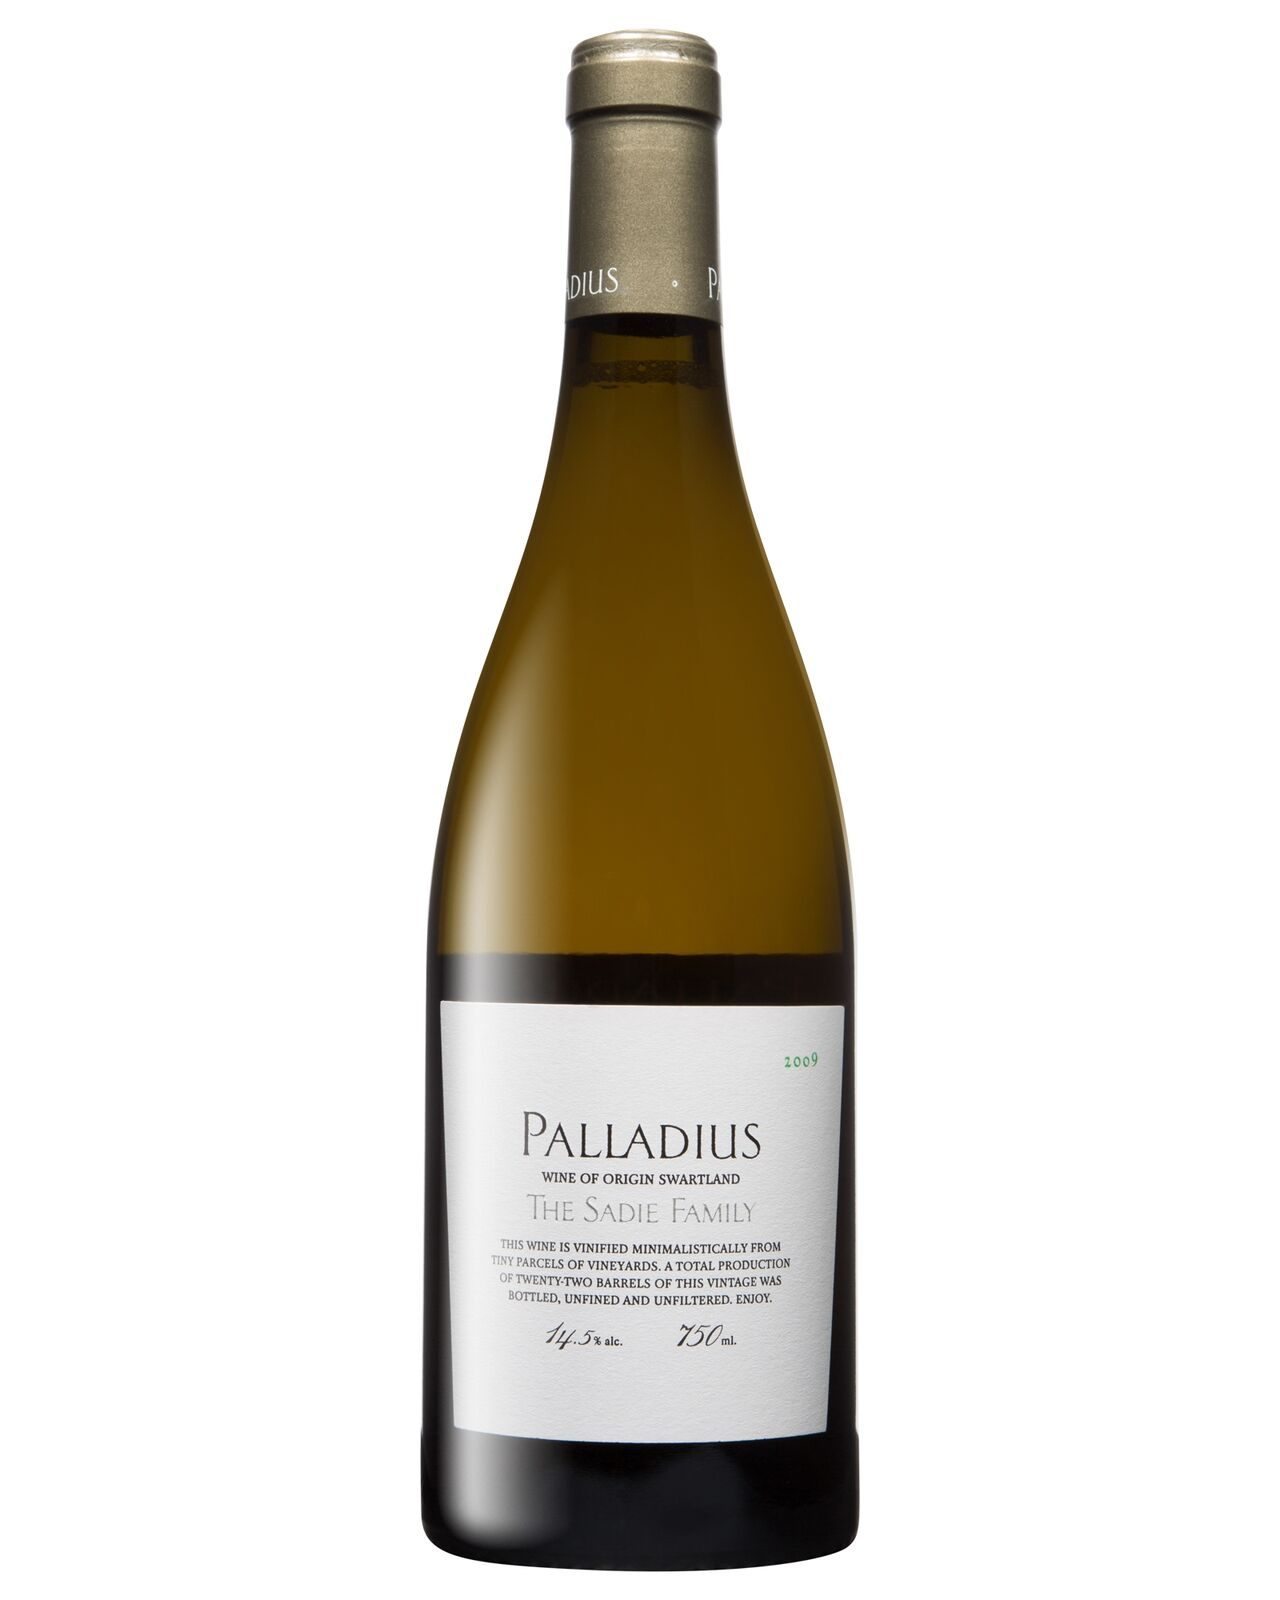 Sadie Family Palladius 2009 bottle Dry White Wine 750mL Swartland